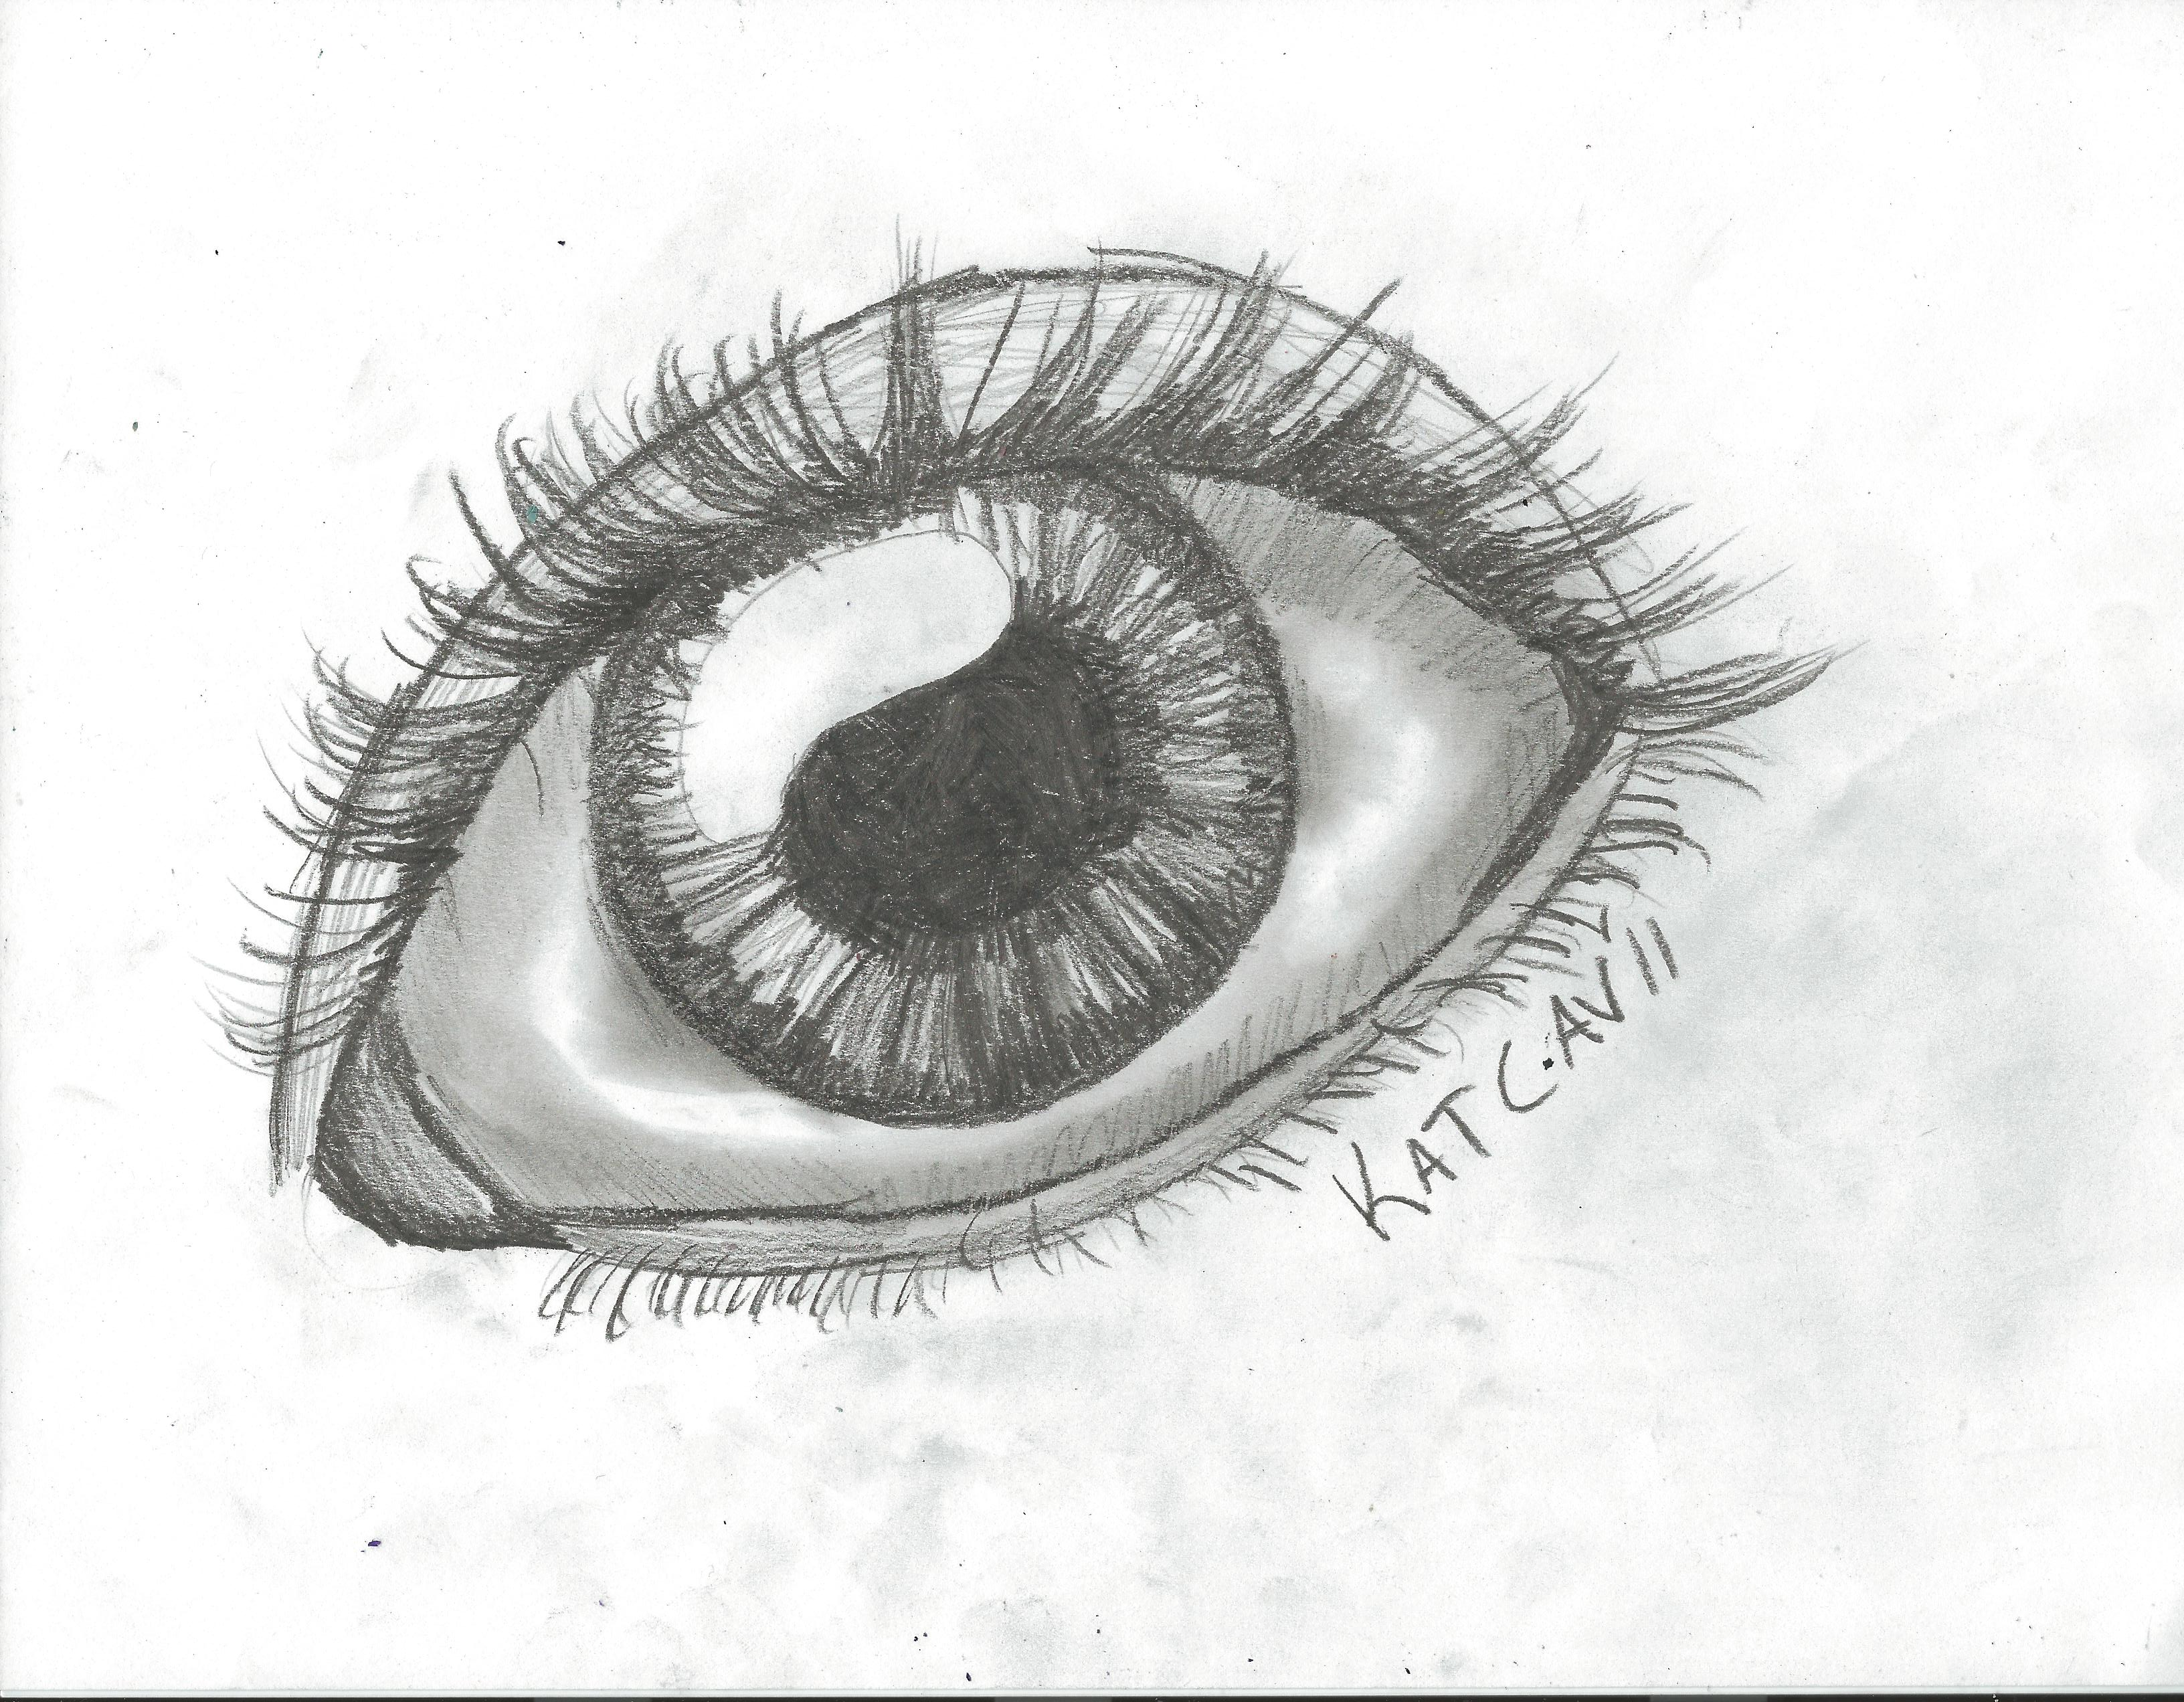 How to draw an eye updated 15 steps picture of finishing touches izmirmasajfo